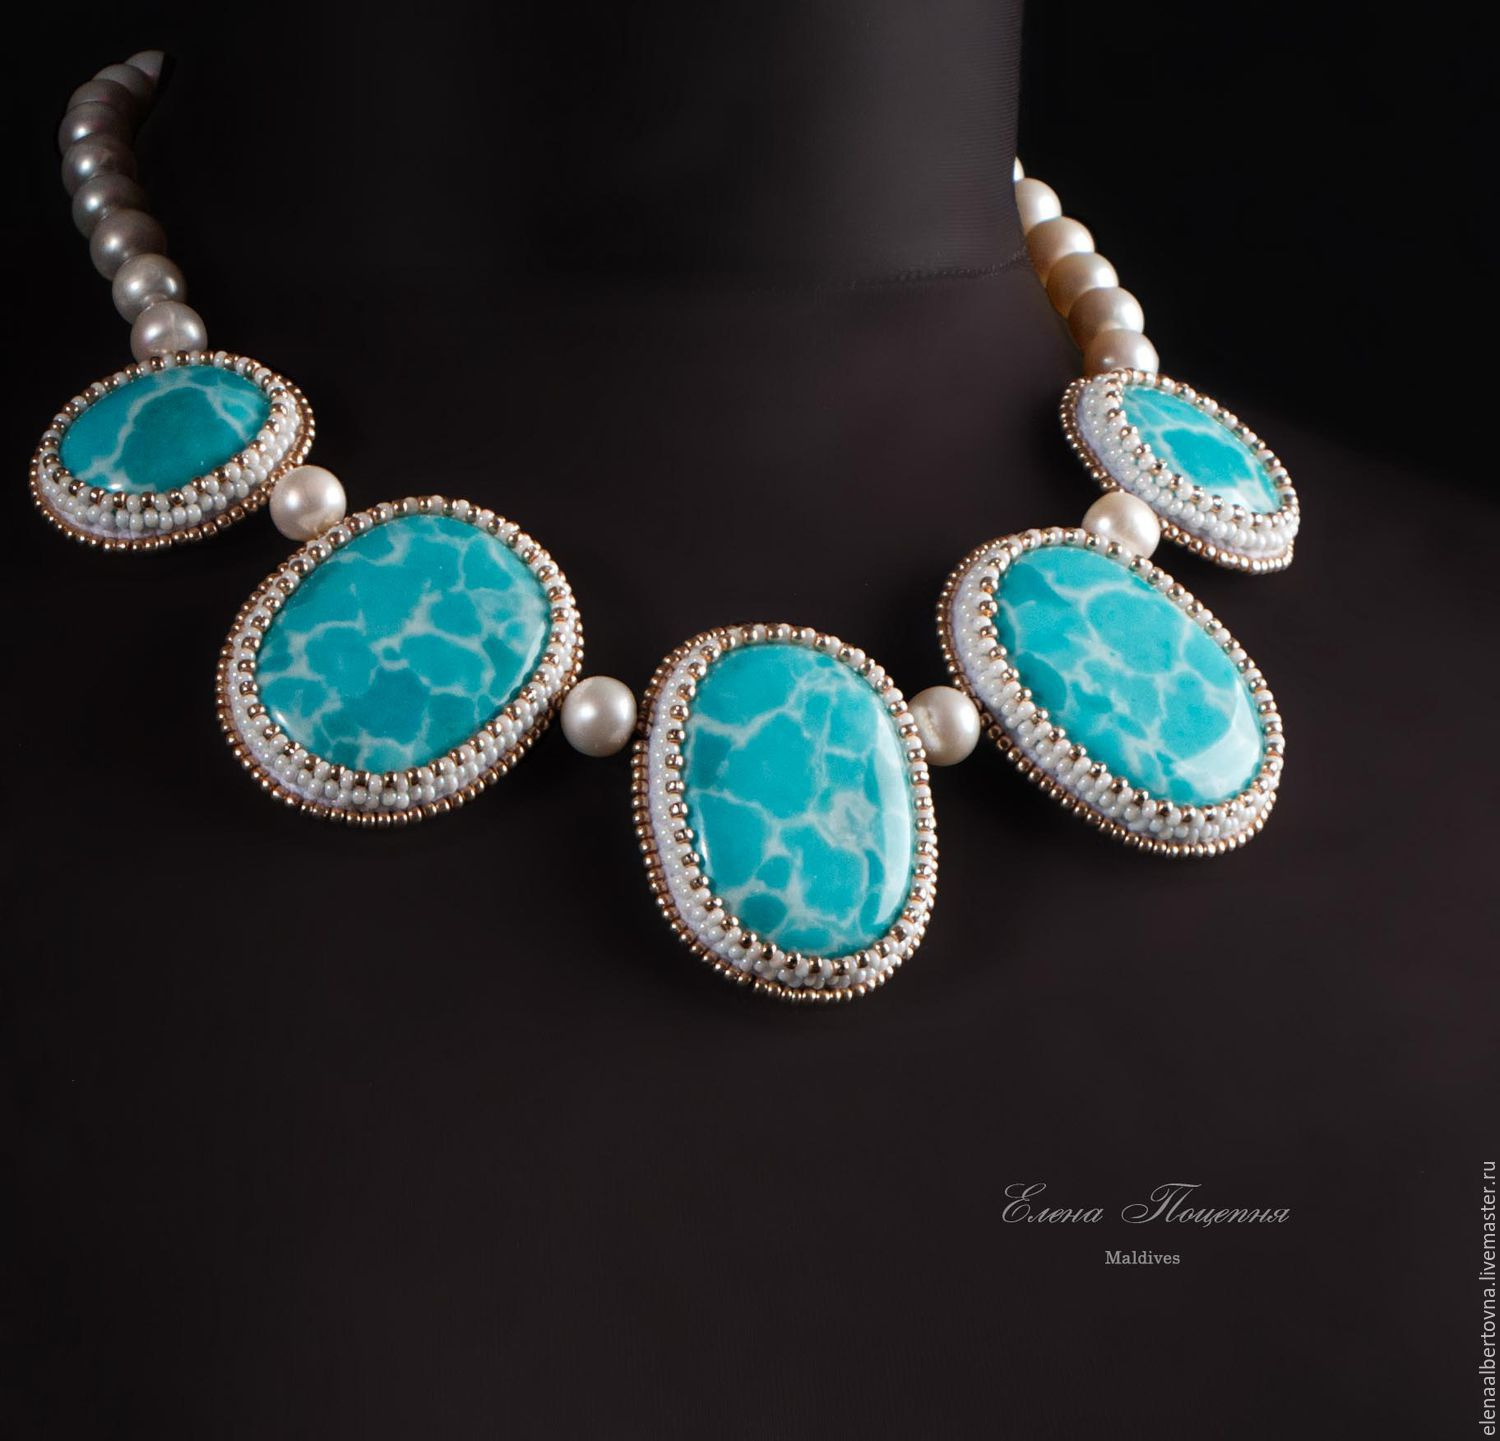 Necklace handmade. To order blue choker Maldives. Elena Piana. Fair Masters. Turquoise - blue necklace. Beaded embroidery. turquoise blue larimar. The ocean. White Pearl. White beads.